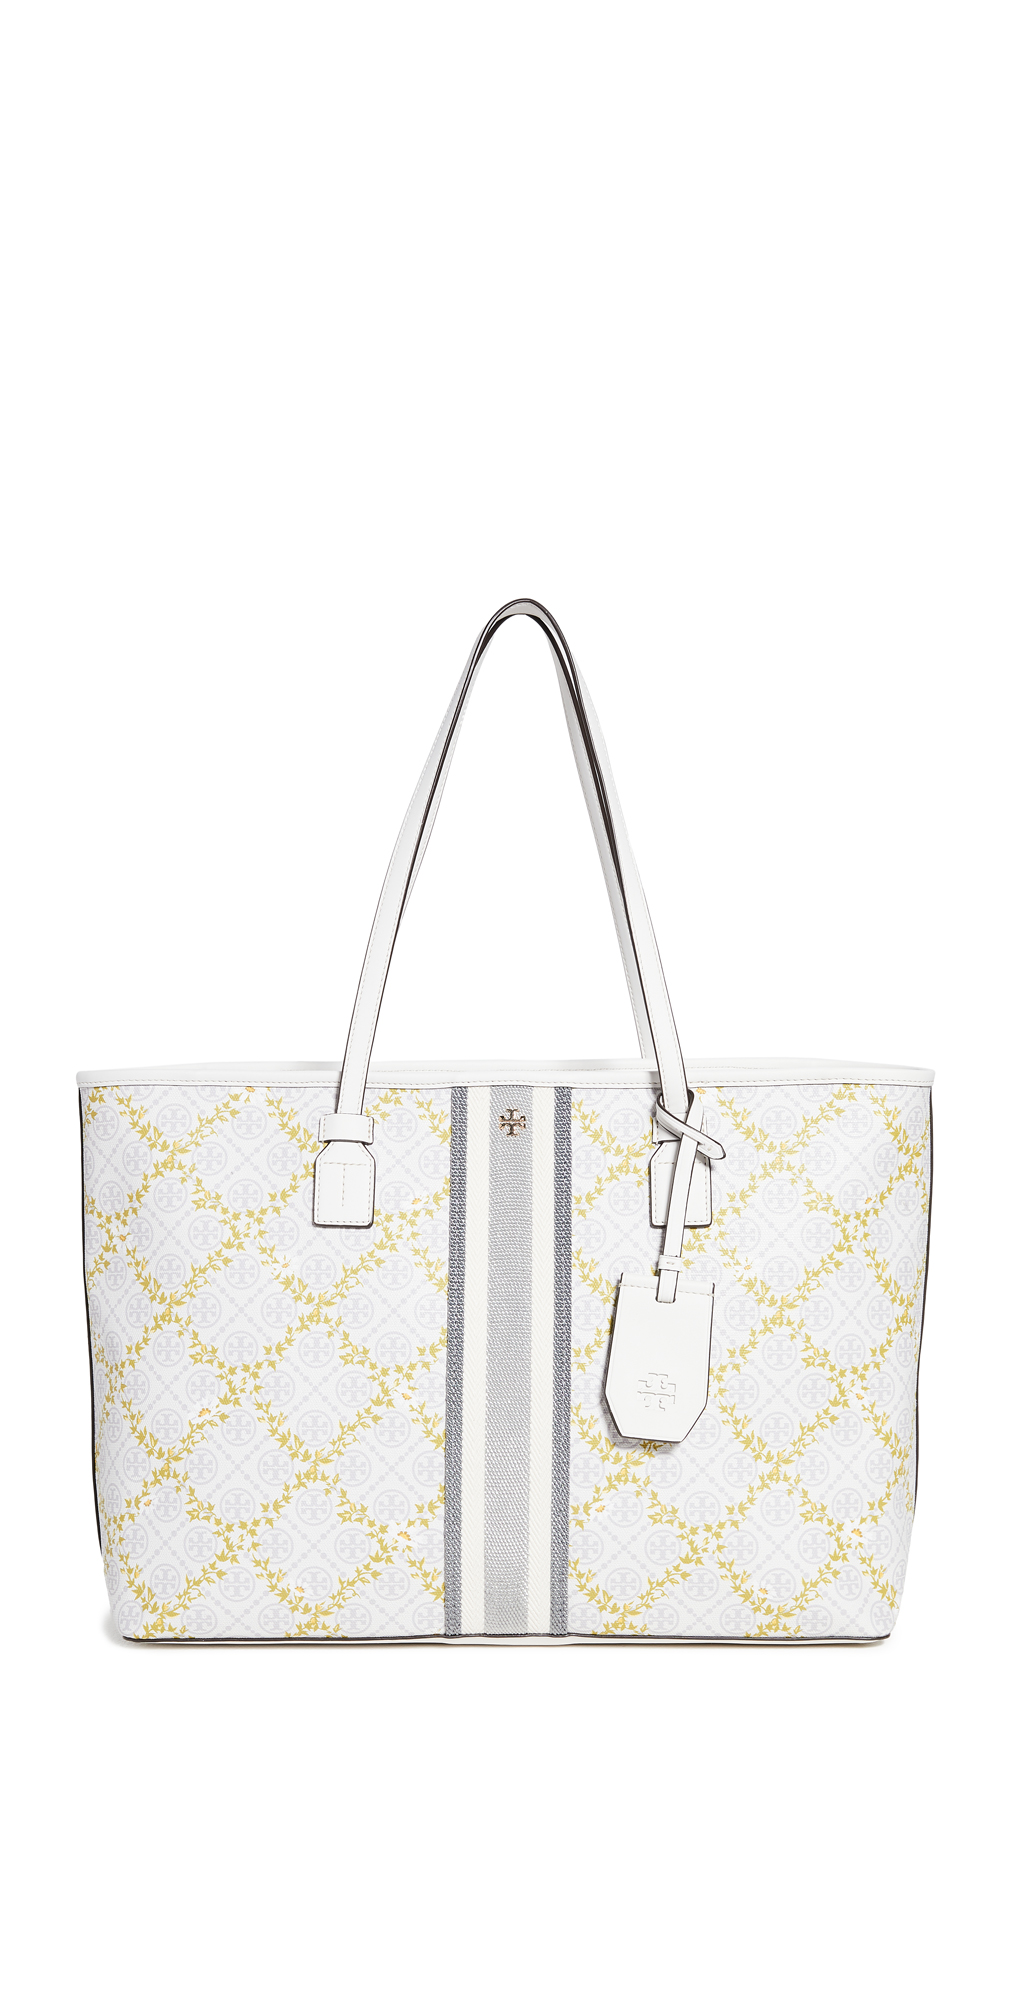 Tory Burch T Monogram Floral Vine Top Zip Tote